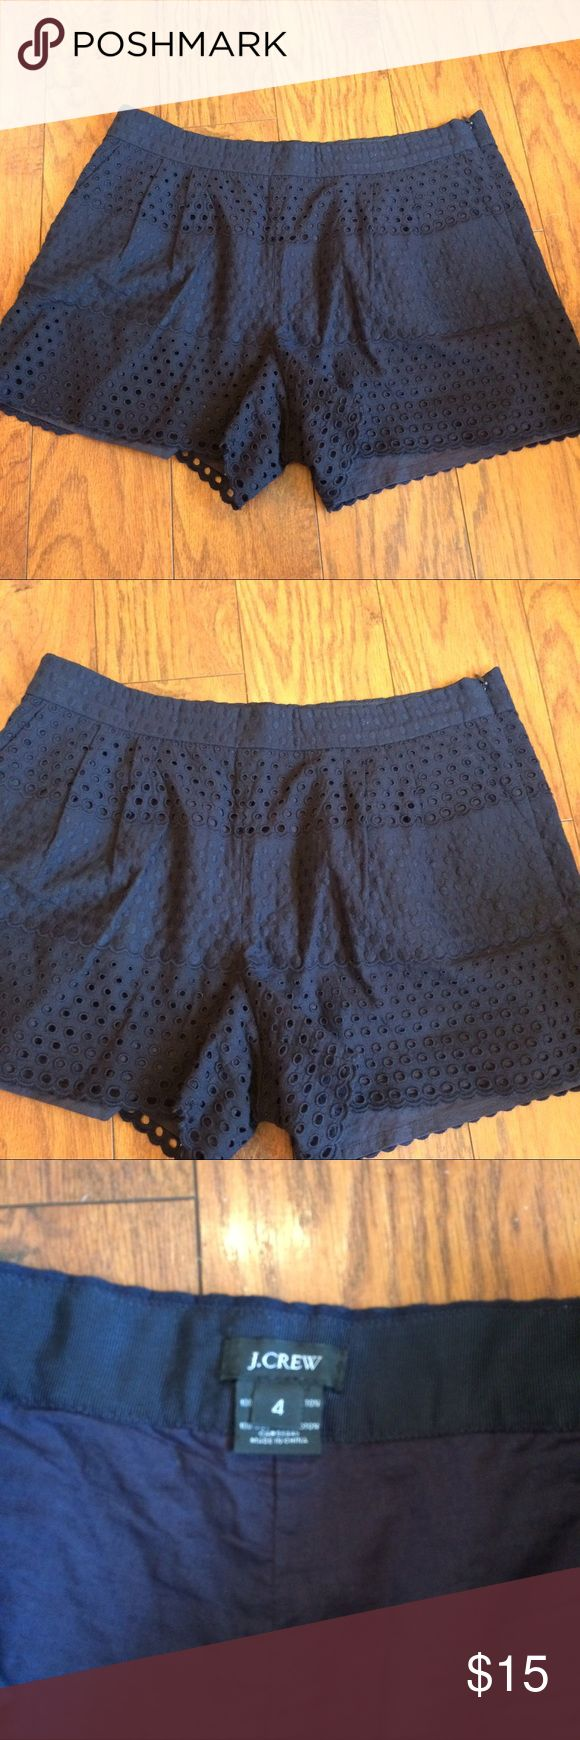 "J Crew Navy Blue Eyelet Shorts Side Zip Size 4 J Crew navy blue eyelet shorts - size 4. Side zipper close. Two pockets. Lined. Ruffle hem. Measures 13"" in length, 3"" inseam, 10"" rise & 15.5"" at waist. Excellent condition- no flaws or wear J. Crew Shorts"